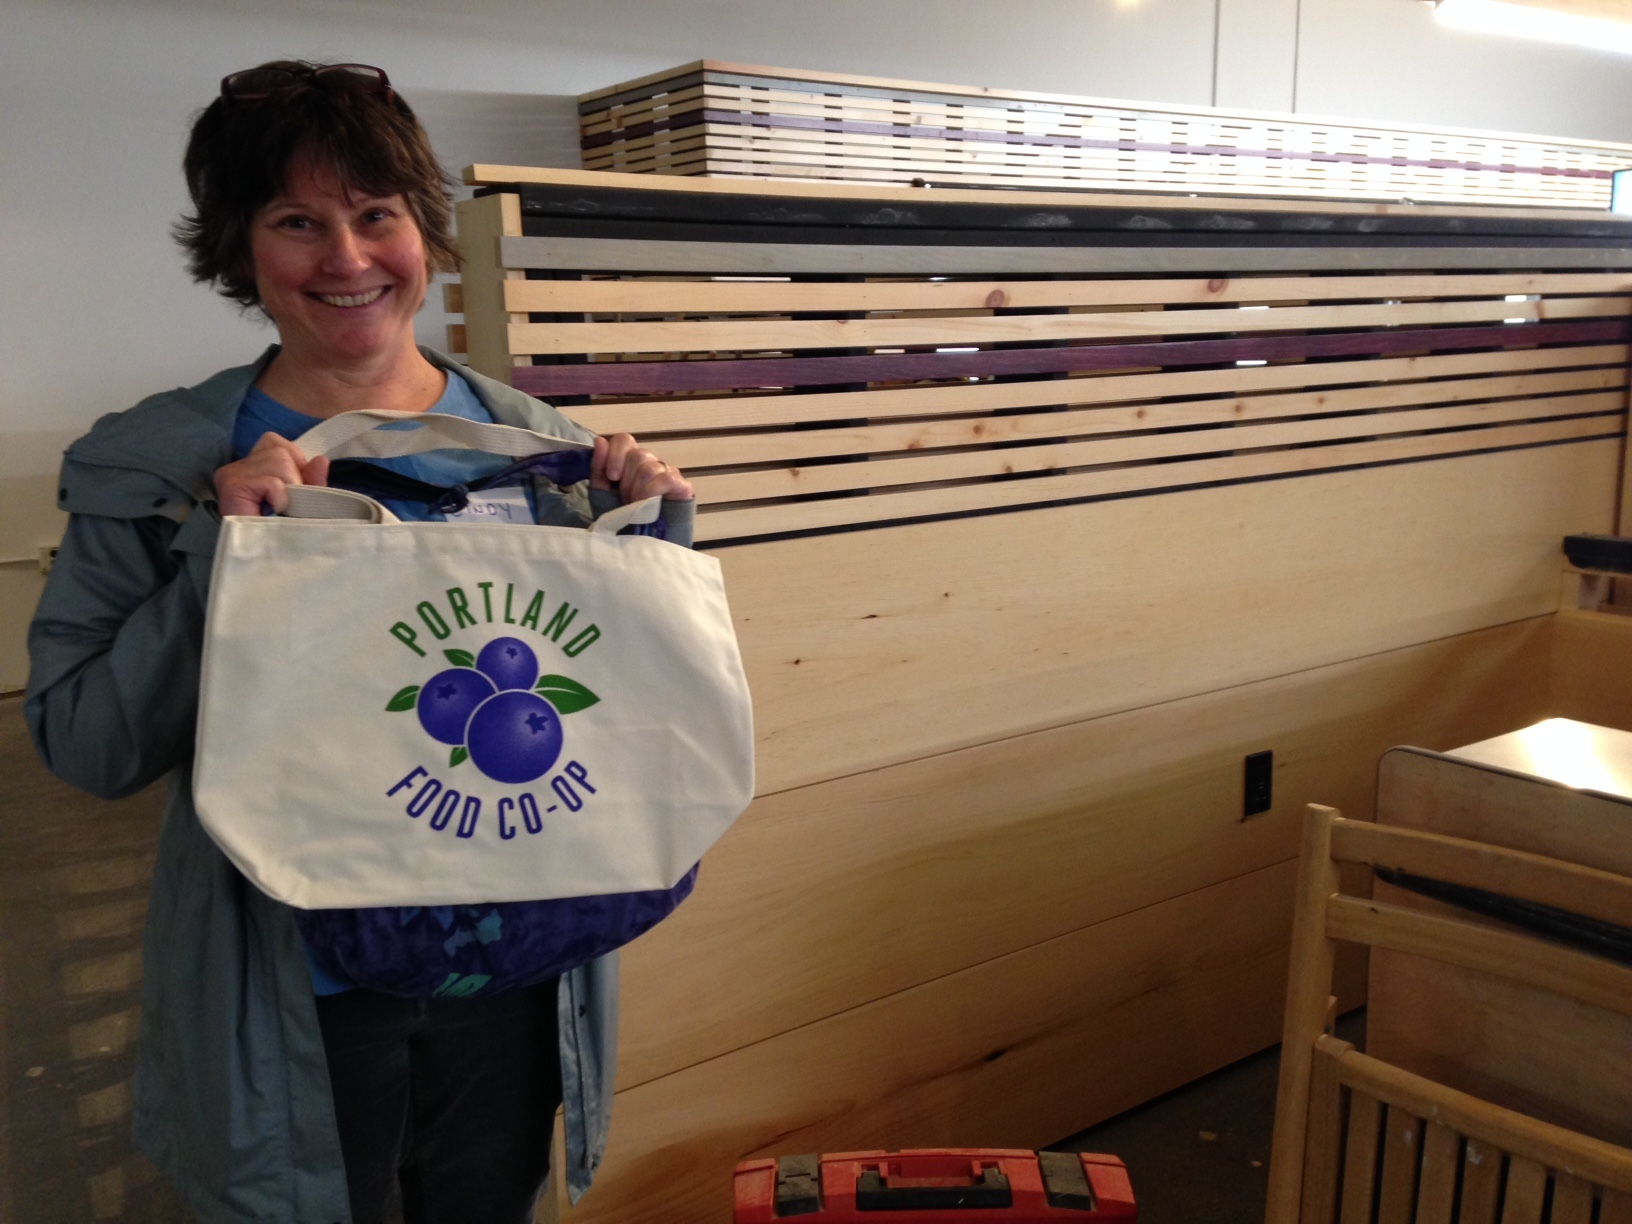 Cindy Hyman became the 2000th member-owner of the soon-to-open Portland Food Co-op Tuesday, October 21.